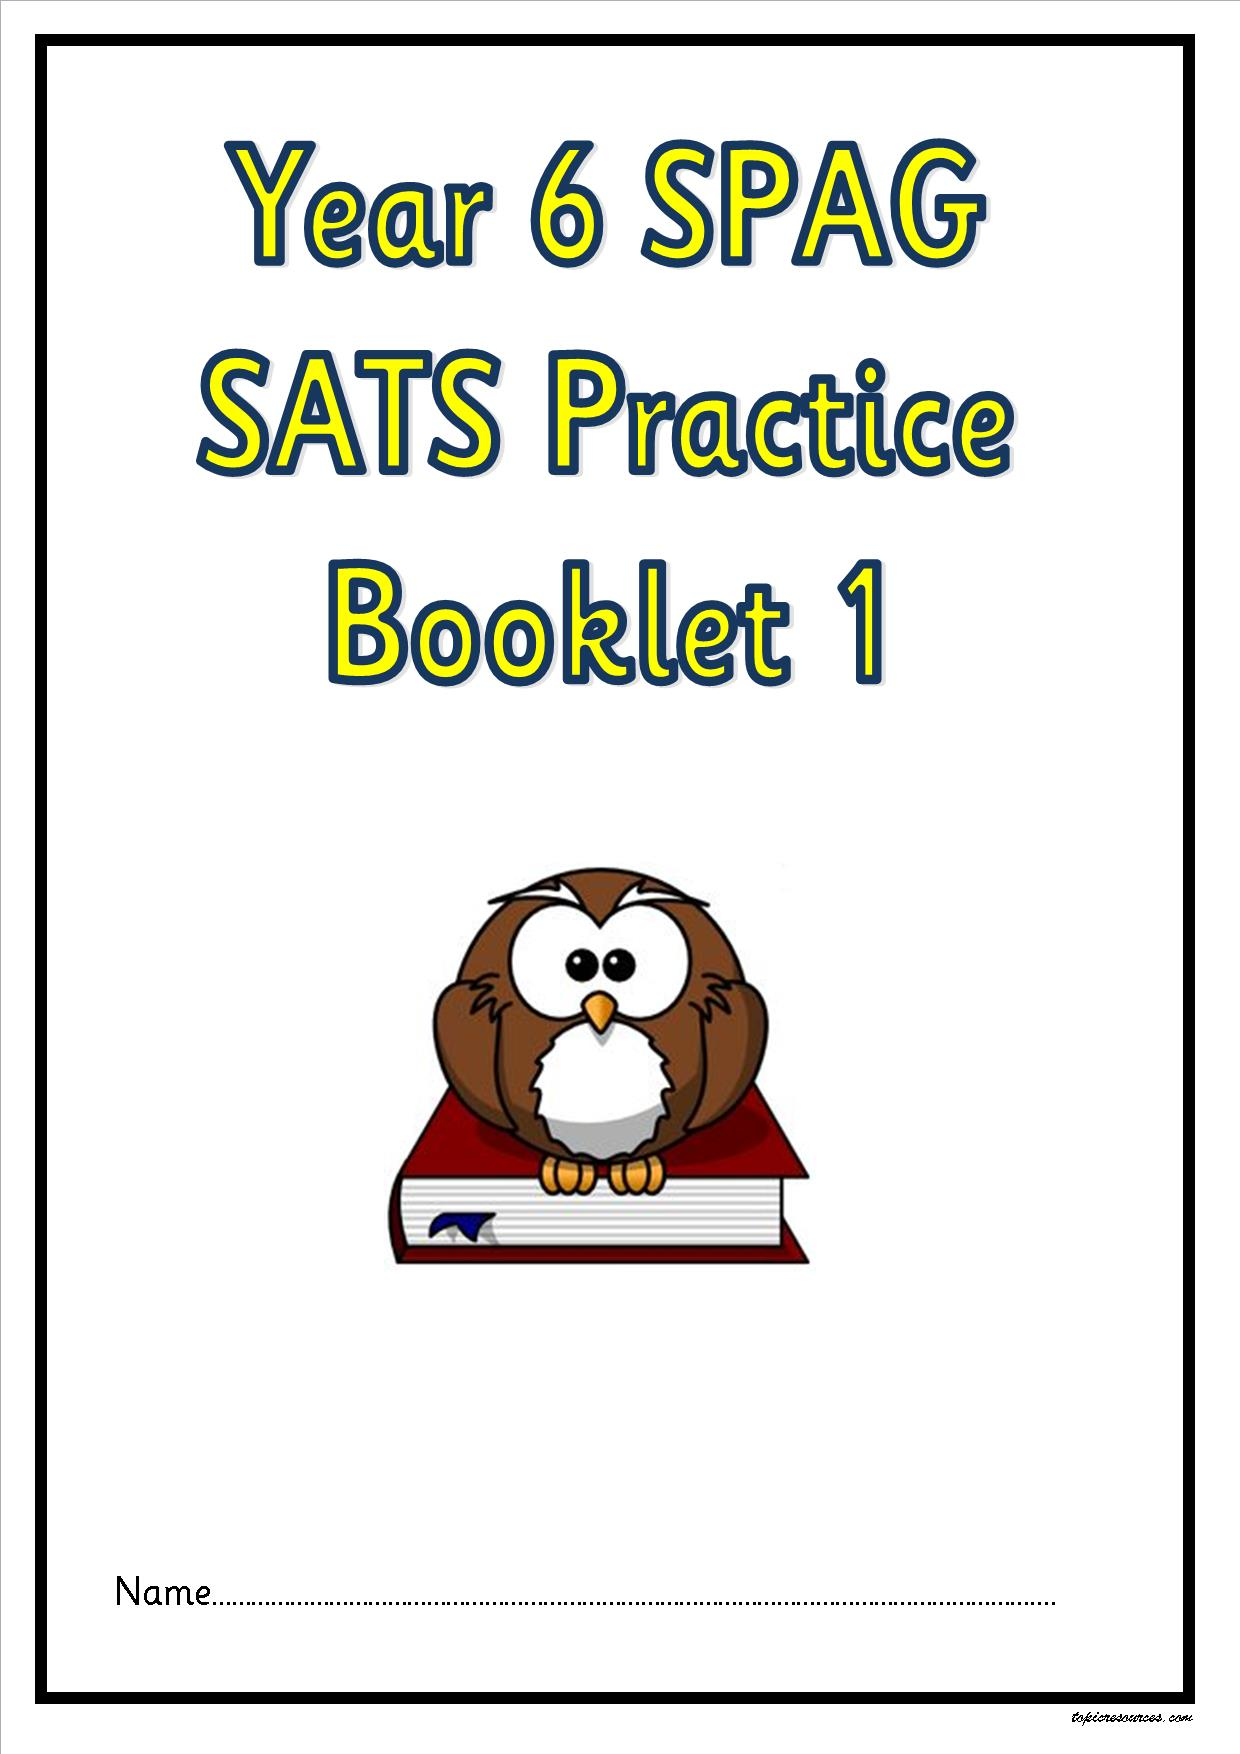 worksheet Sats Worksheets Ks2 ks1 ks2 sen ipcliteracy spag activity booklets guided reading y6 sats practise 1a